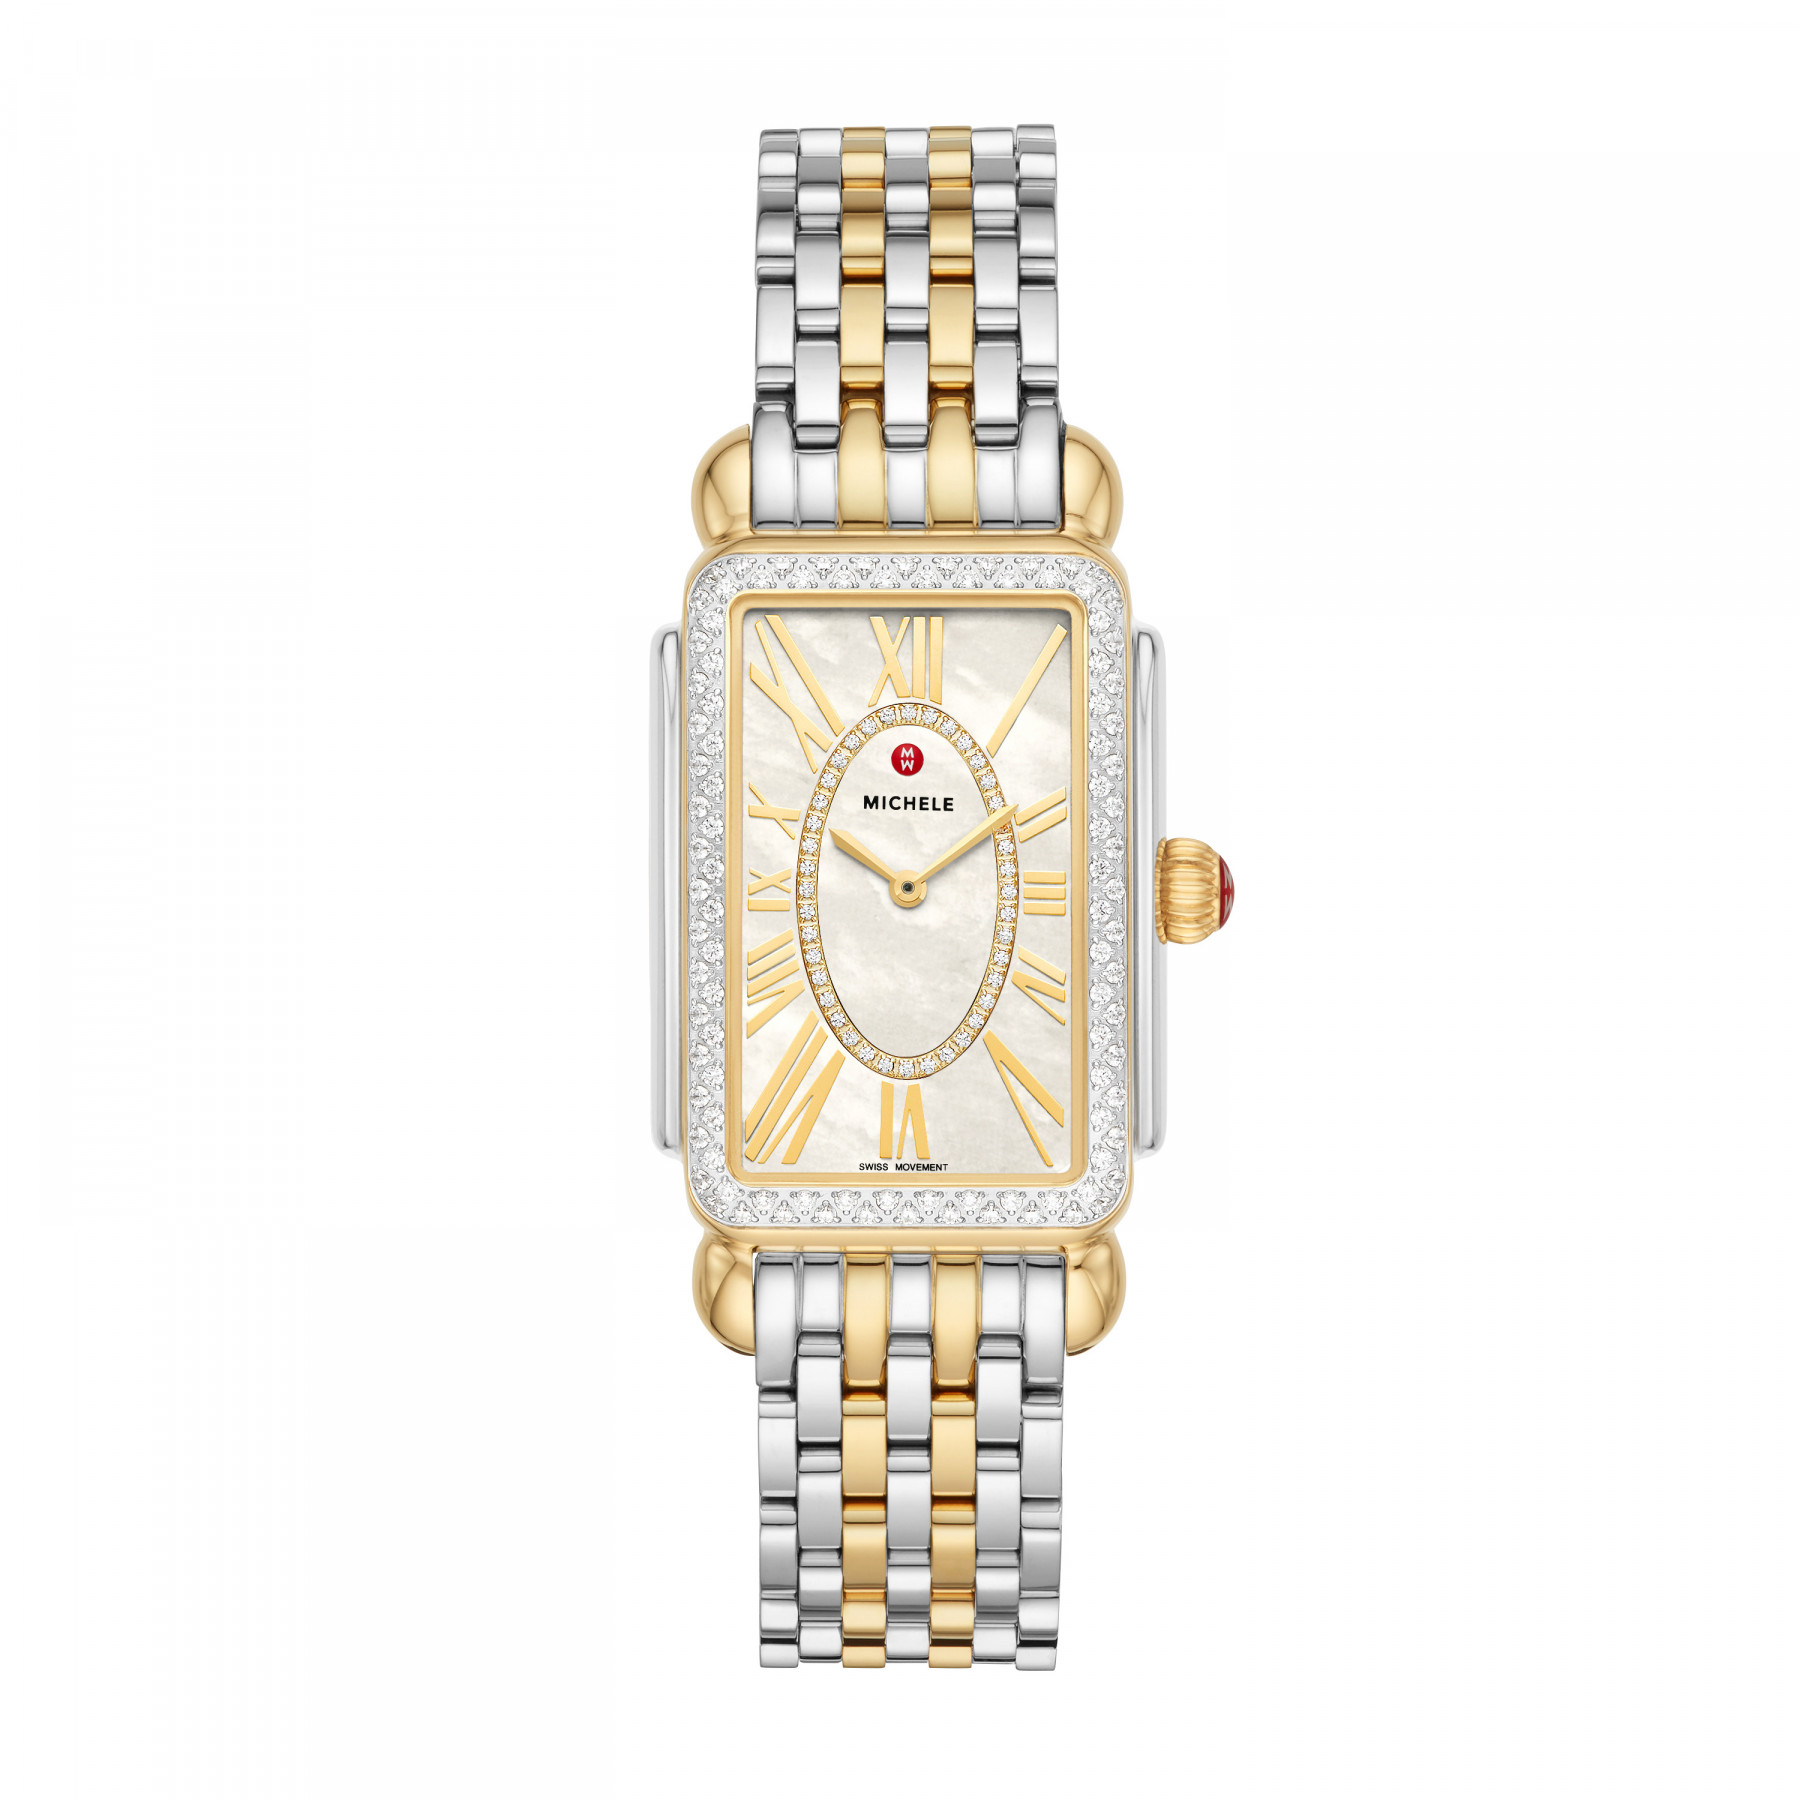 Michele Deco Park Gold and Steel Diamond Watch – 26.5mm front view